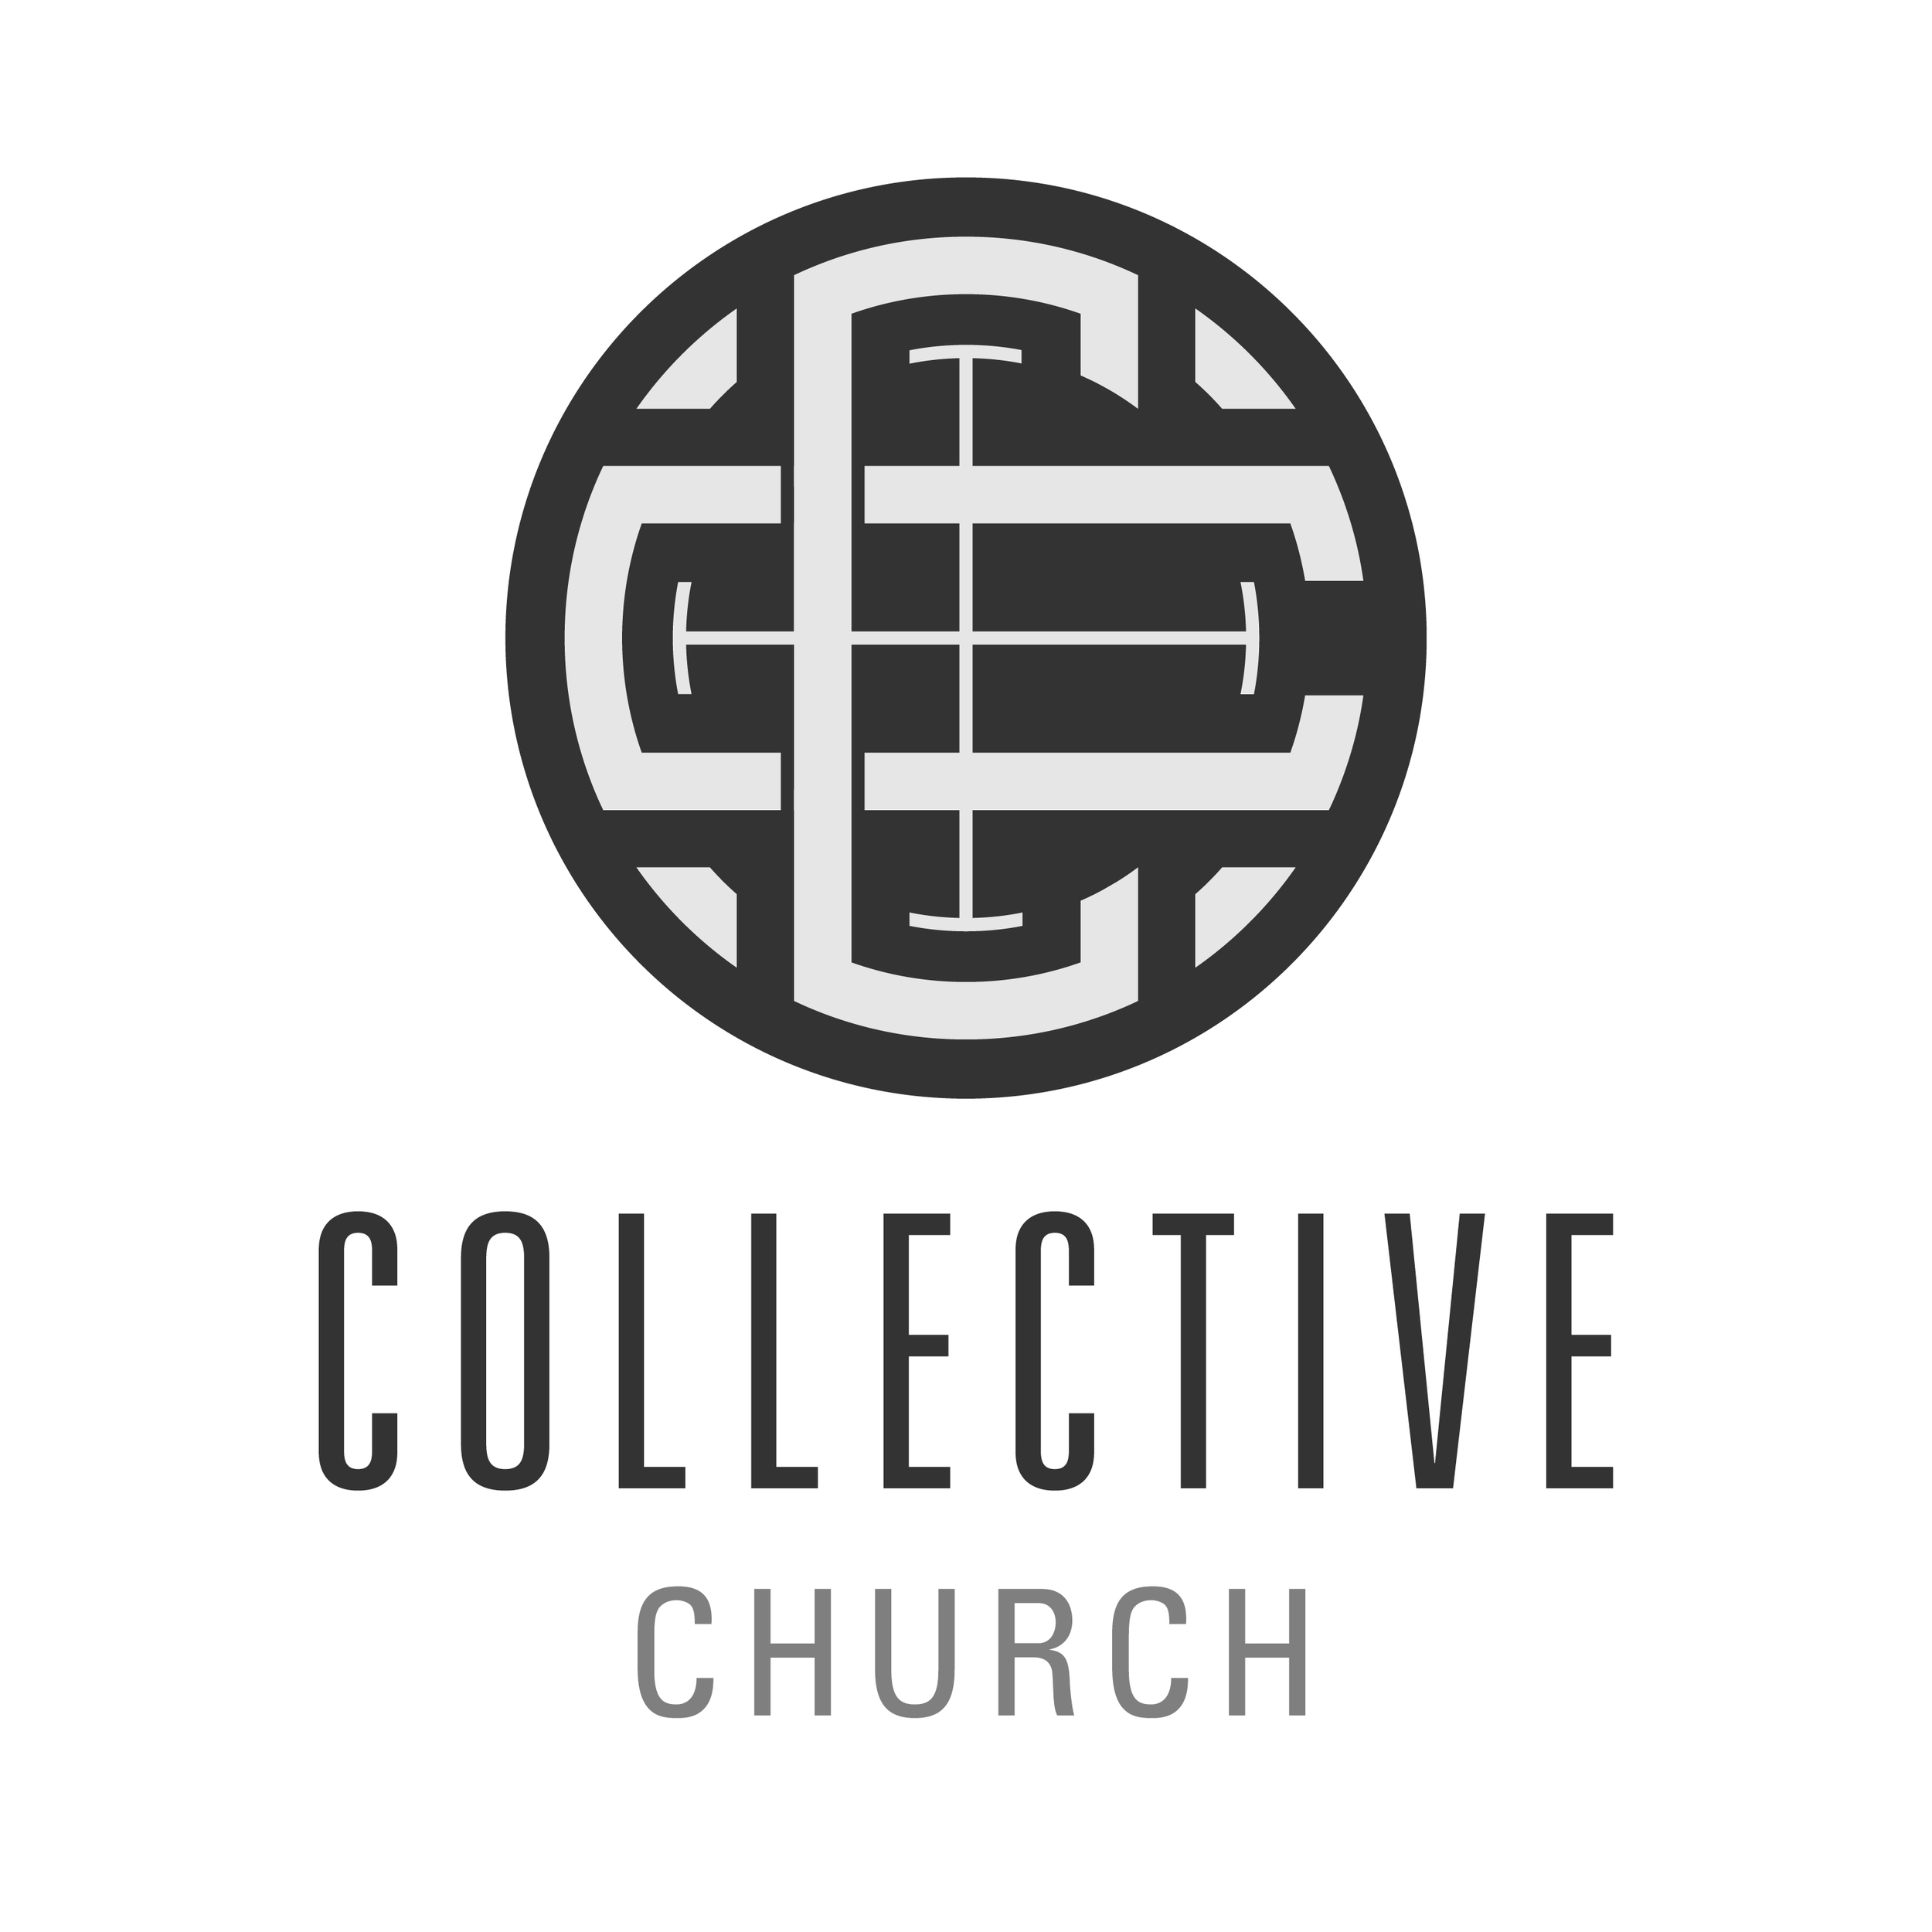 The logo incorporates the two Cs—one horizontal and the other vertical in orientation—of Collective Church. The cross is central to the mark and ties the elements together. The mark fits into a circular form which promotes the idea of unity and harmony in the body of Christ.